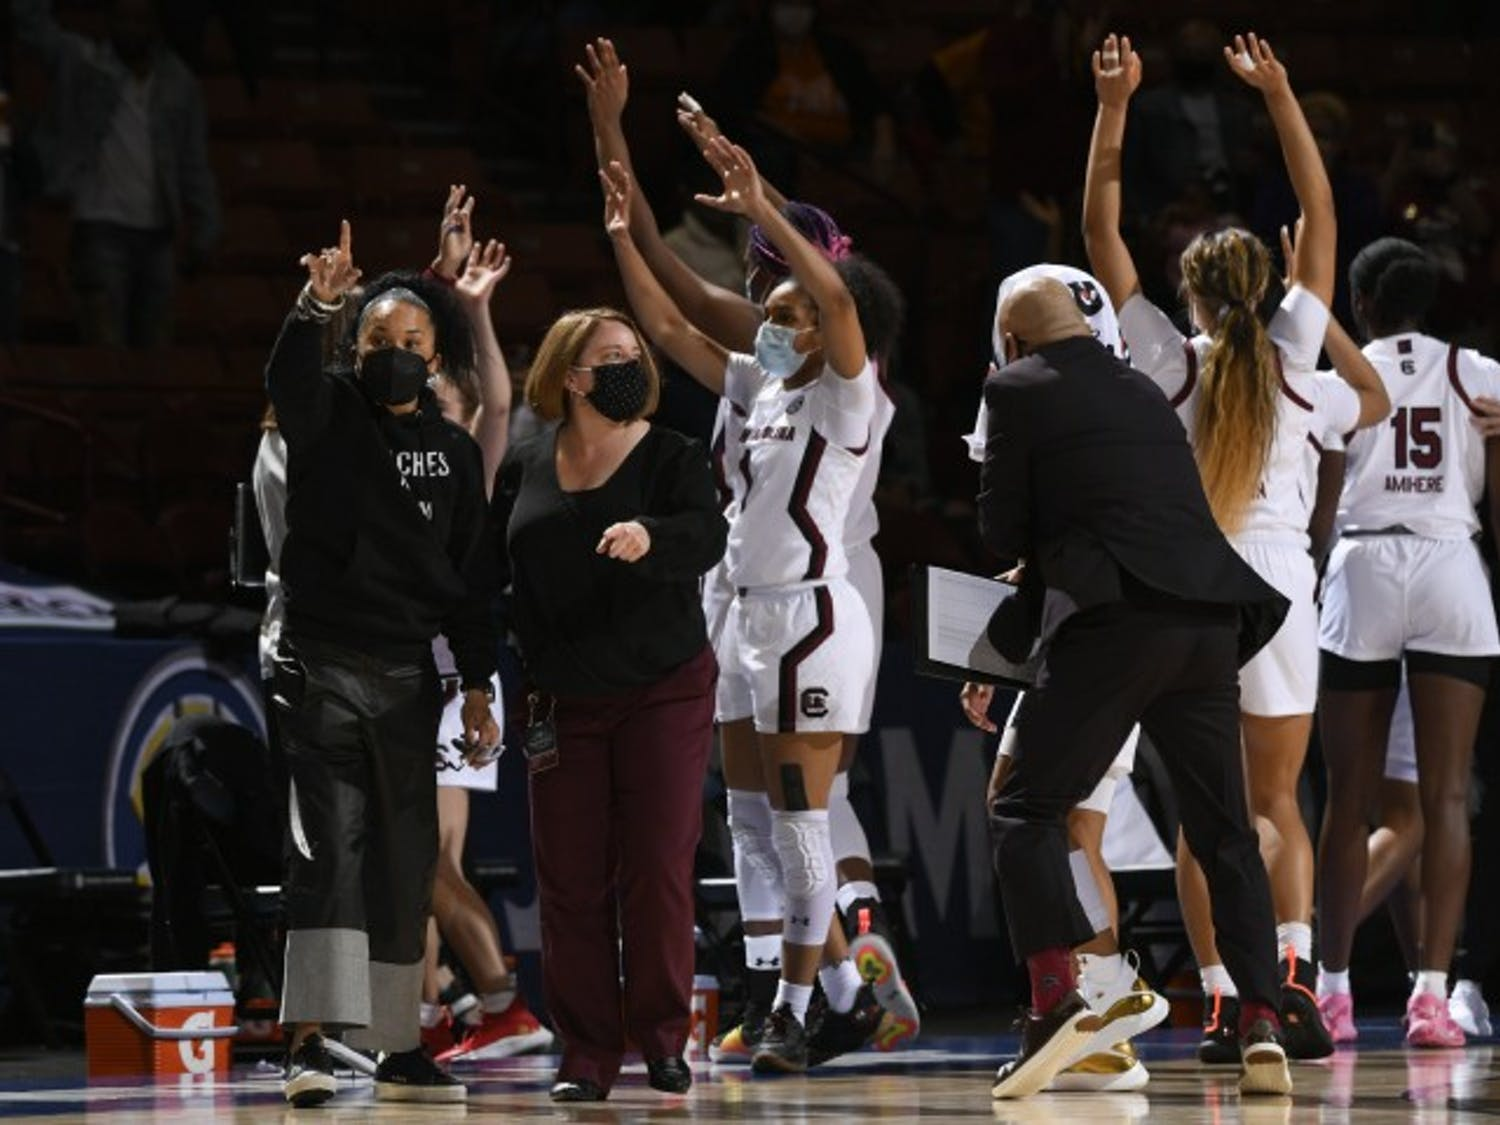 The South Carolina women's basketball team celebrates after a win in the 2021 NCAA tournament.